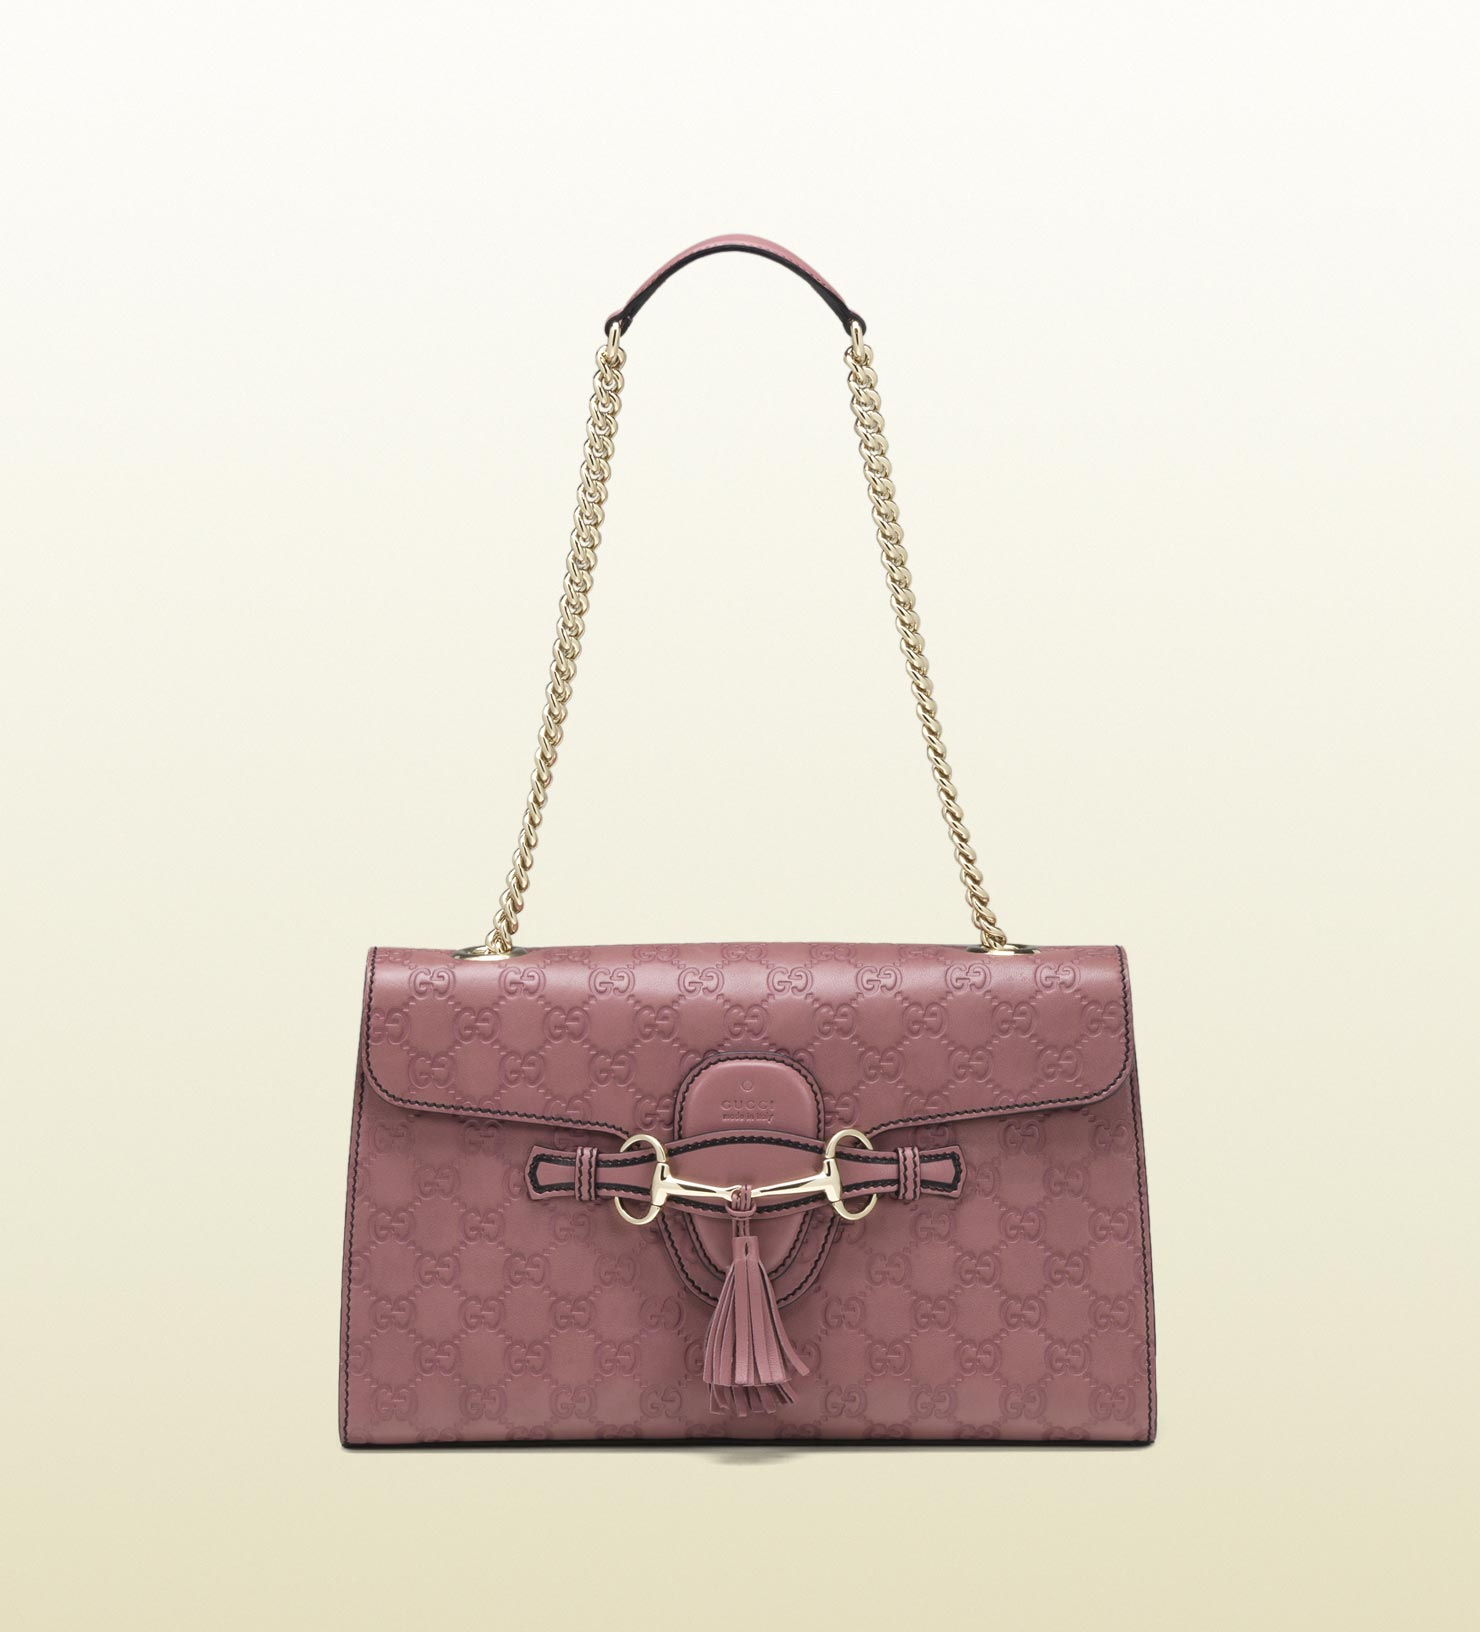 77ab9212b4a Lyst - Gucci Emily Dark Pink Guccissima Chain Shoulder Bag in Pink